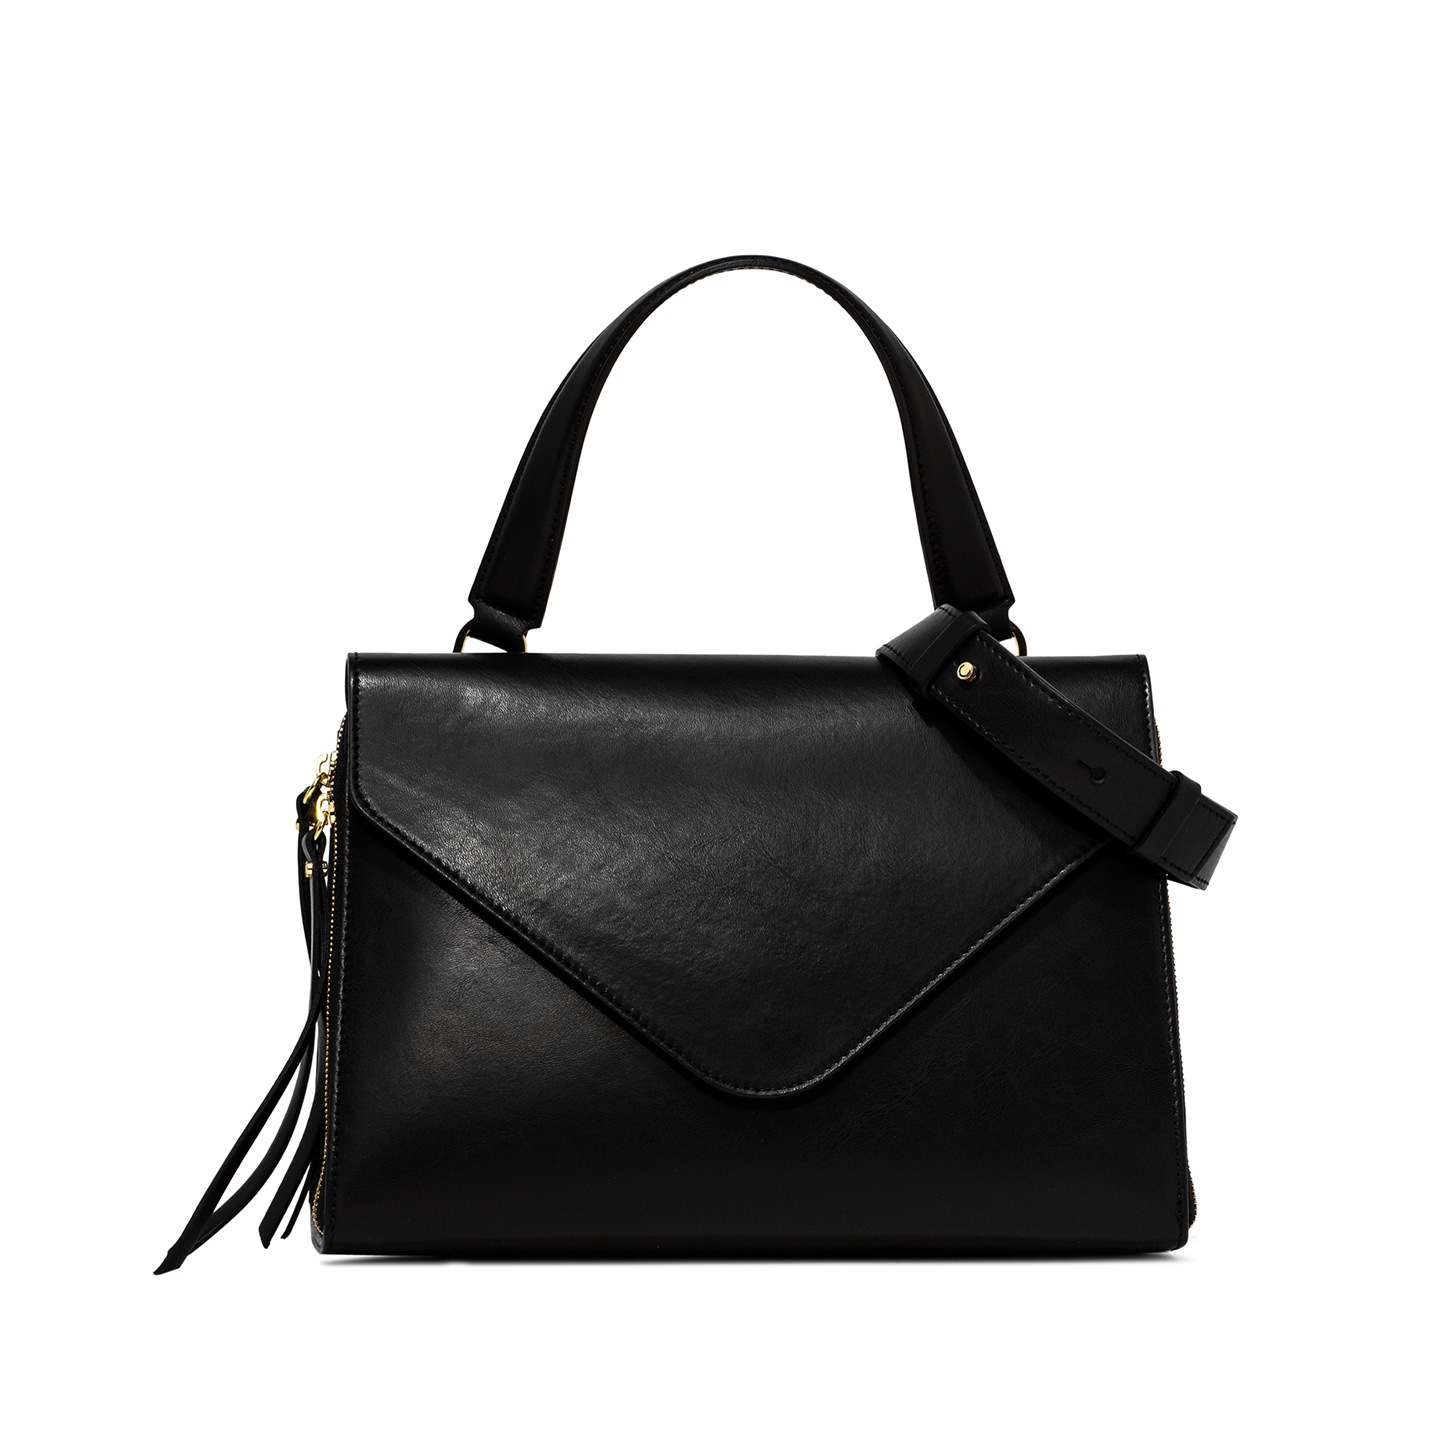 GIANNI CHIARINI: GRETA MEDIUM BLACK HANDBAG